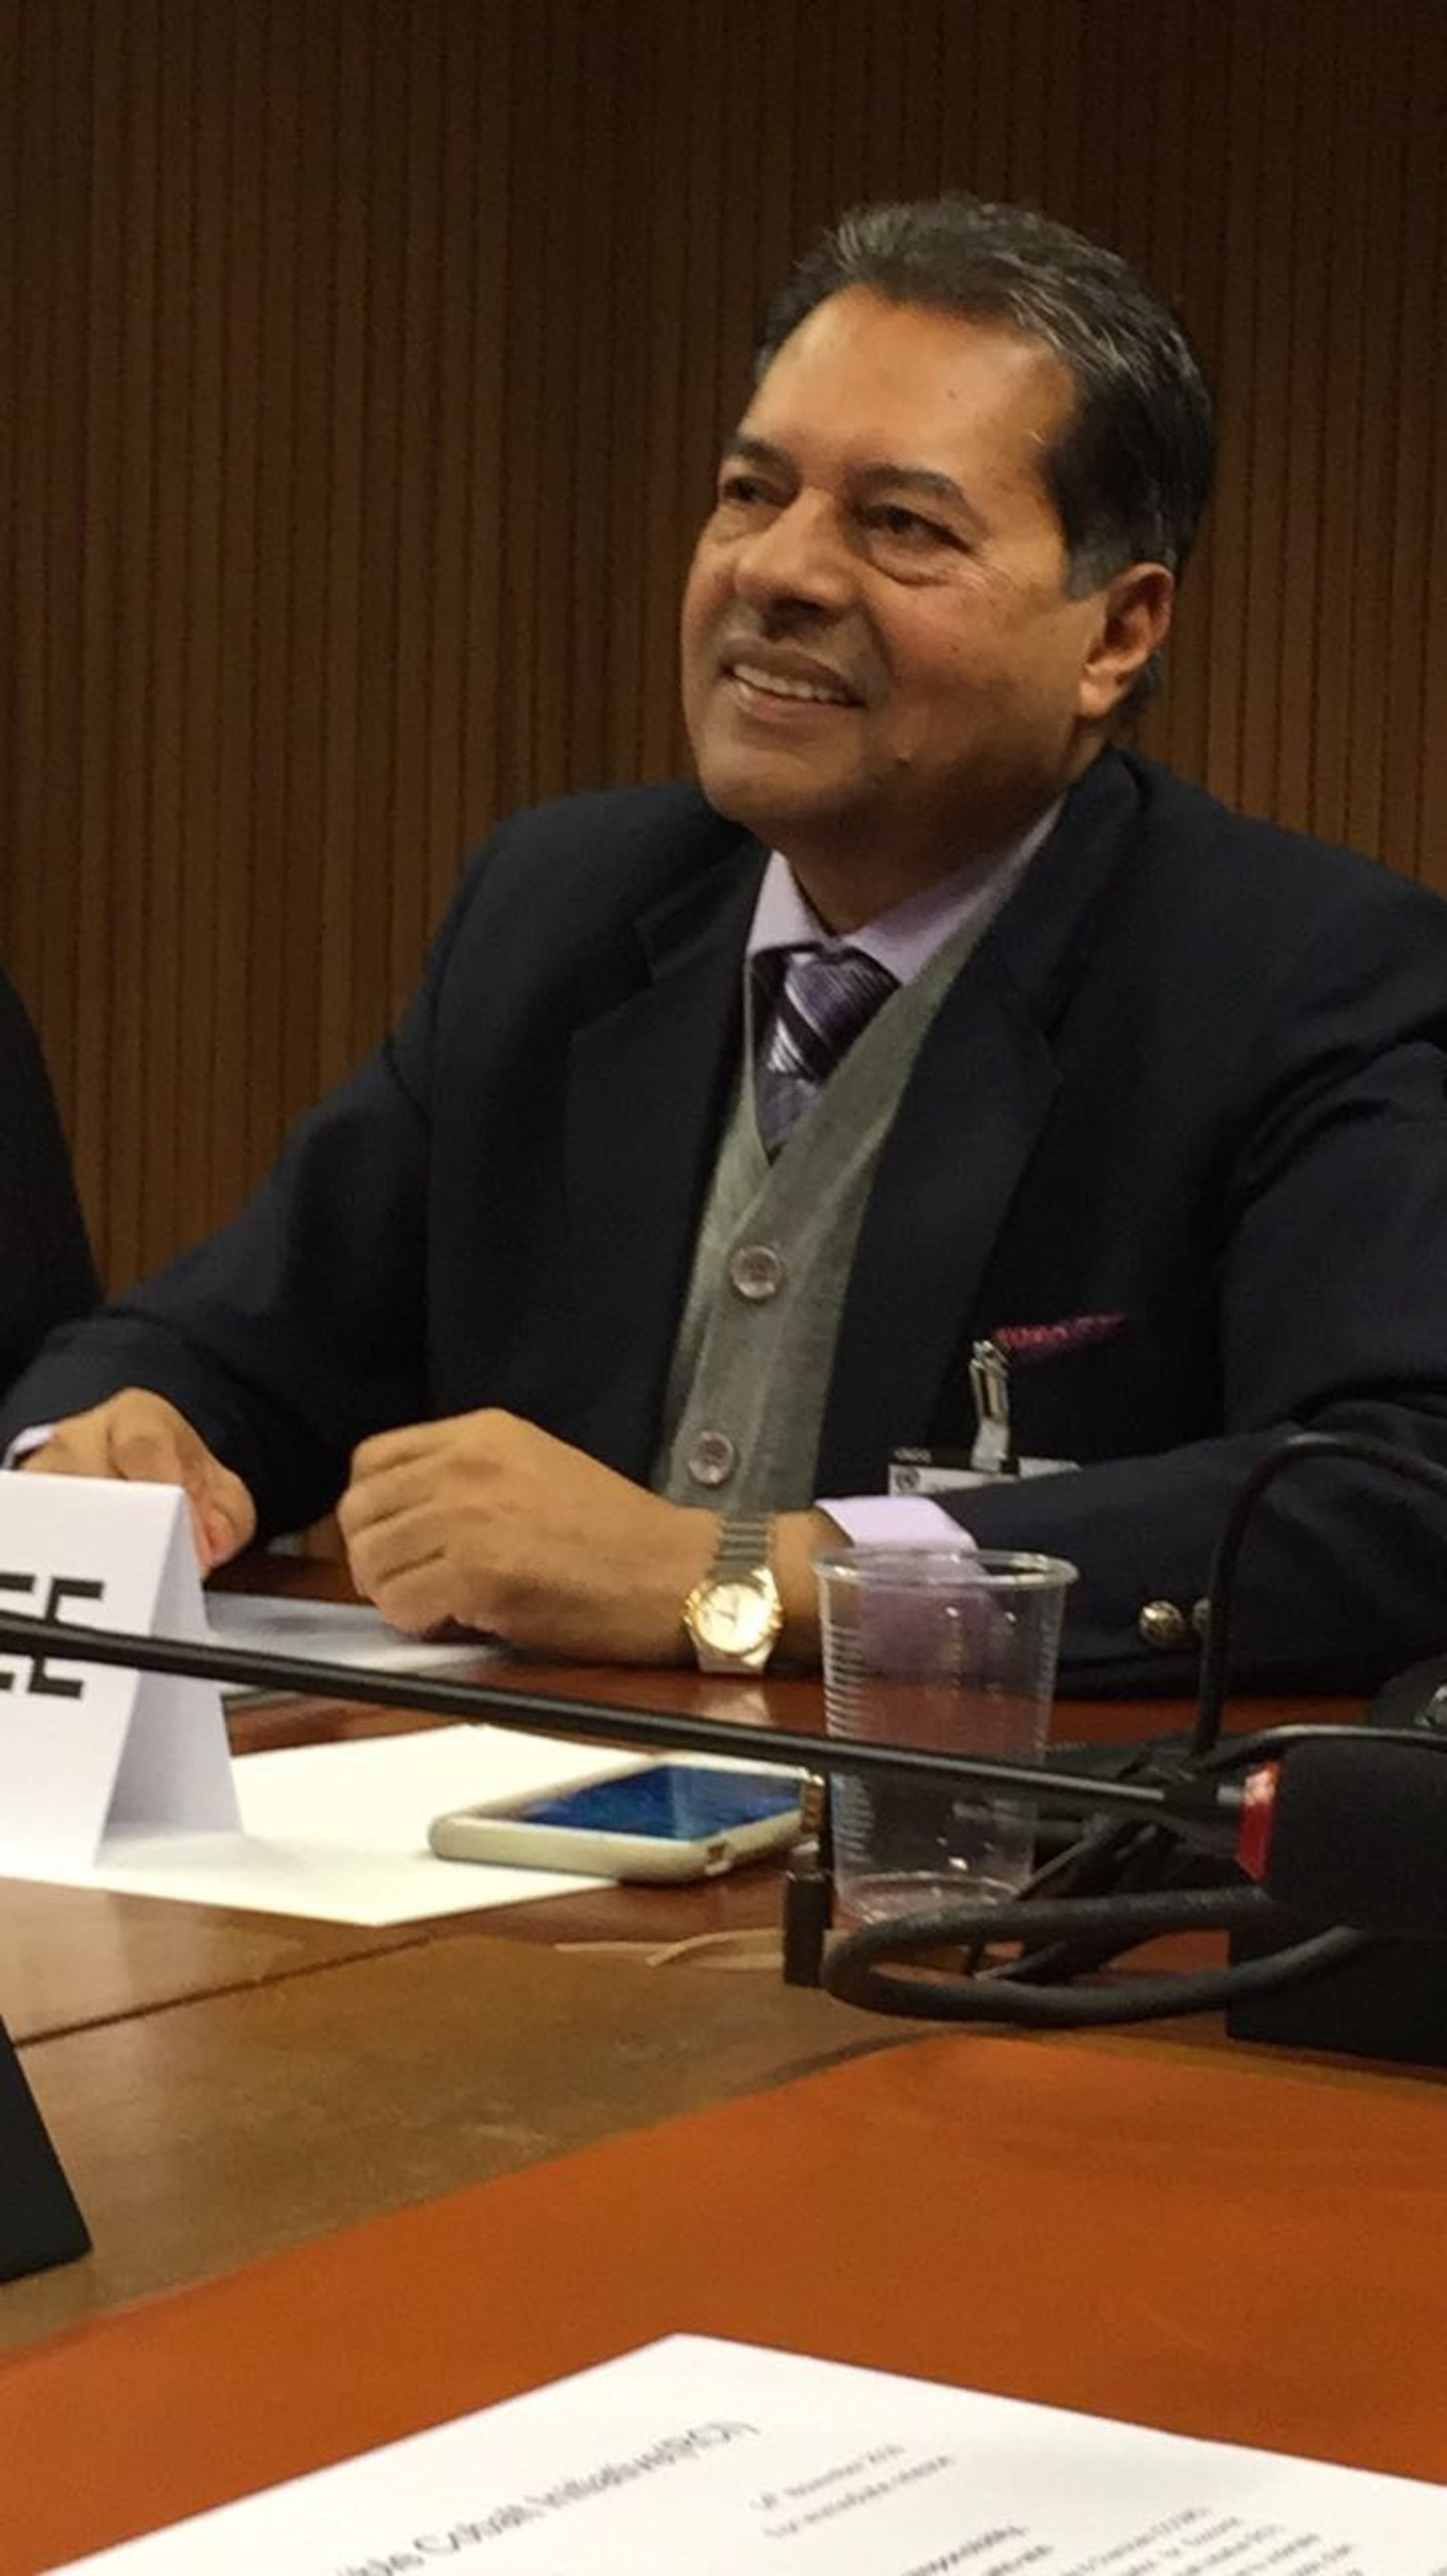 Dr. Chatterjee Explains Benefits of India's Unique '2 Percent Law' at the U.N. Forum on Business and Human Rights.